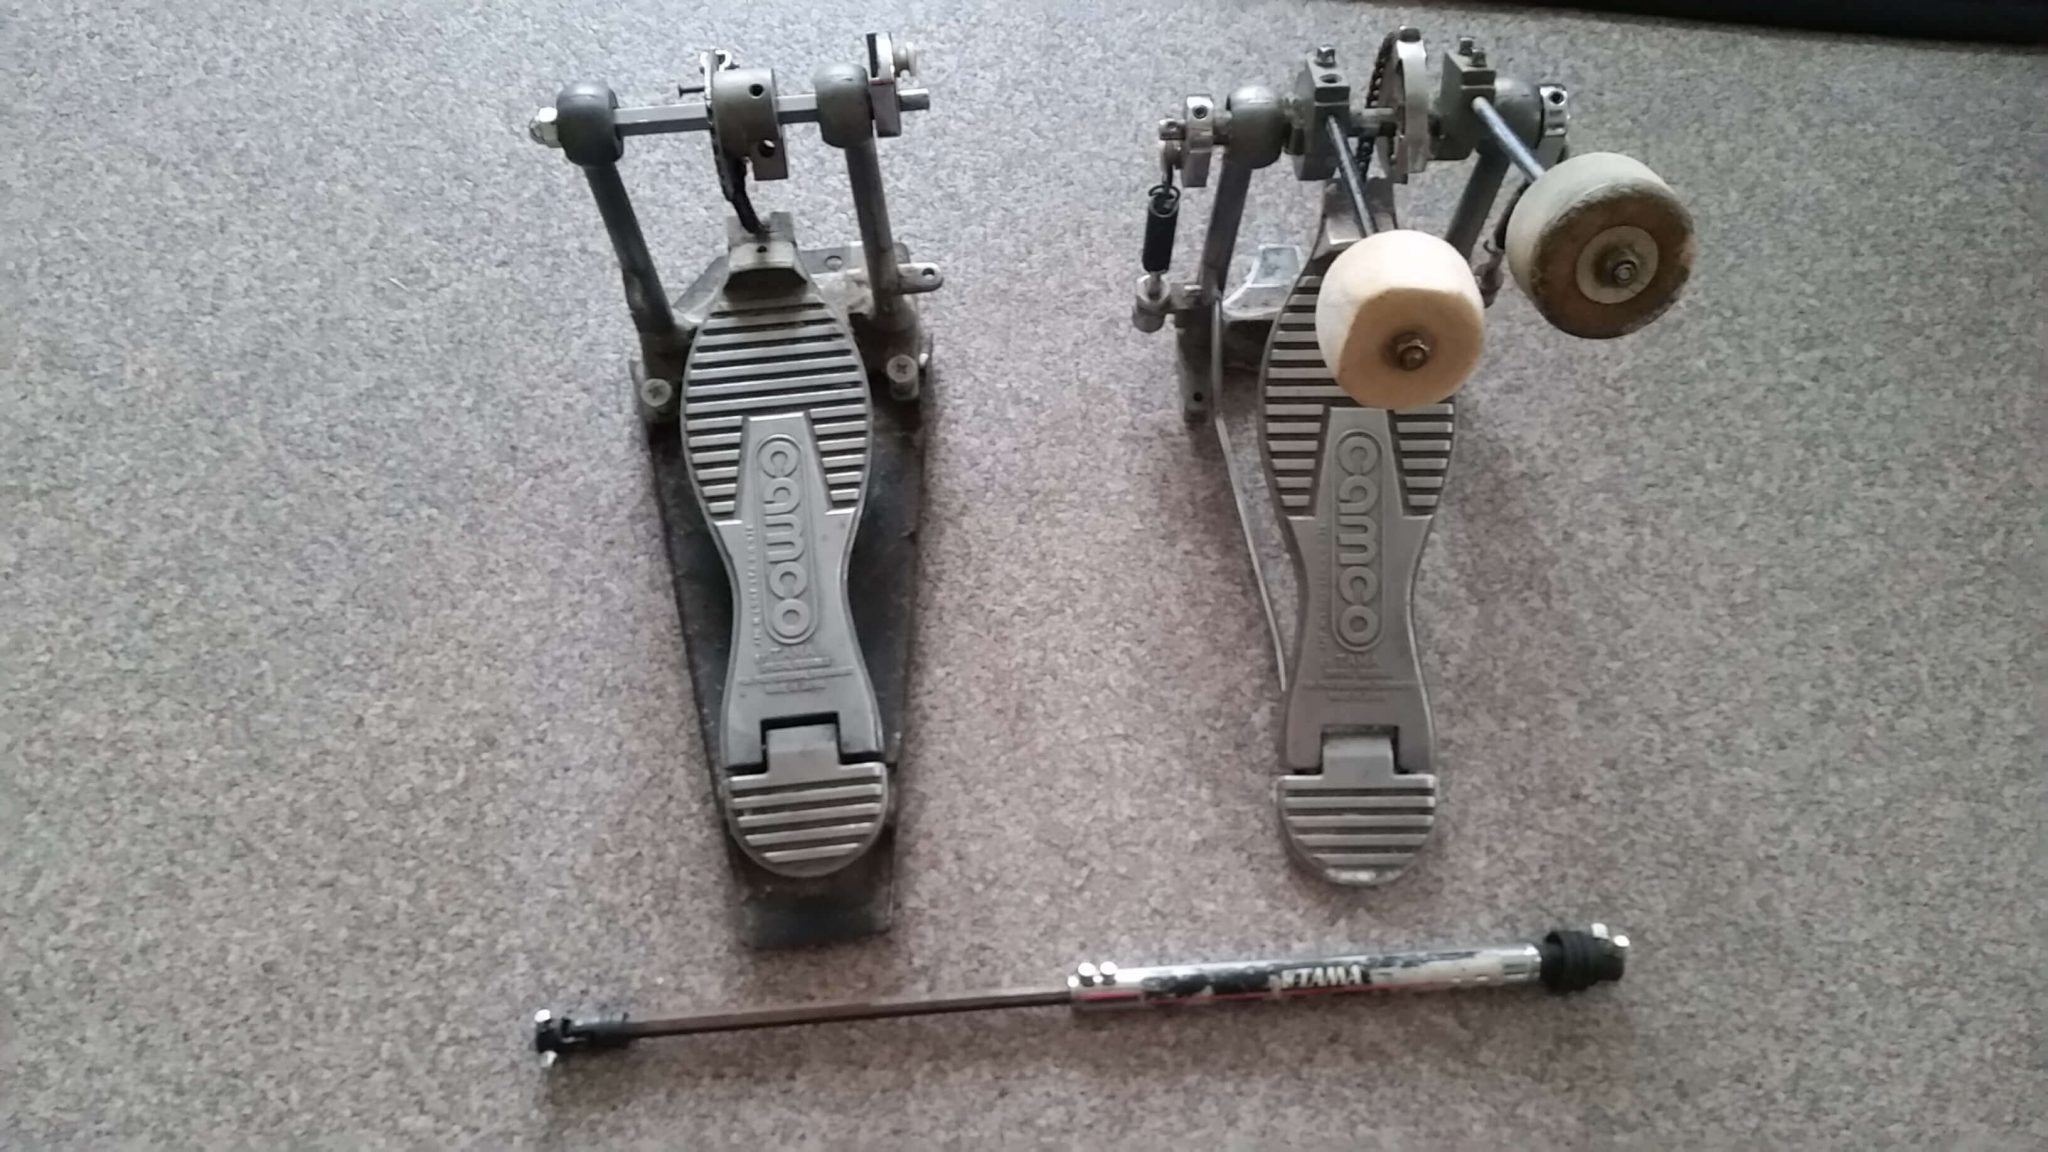 Te koop Tama Camco dubbel baspedaal double bass pedal